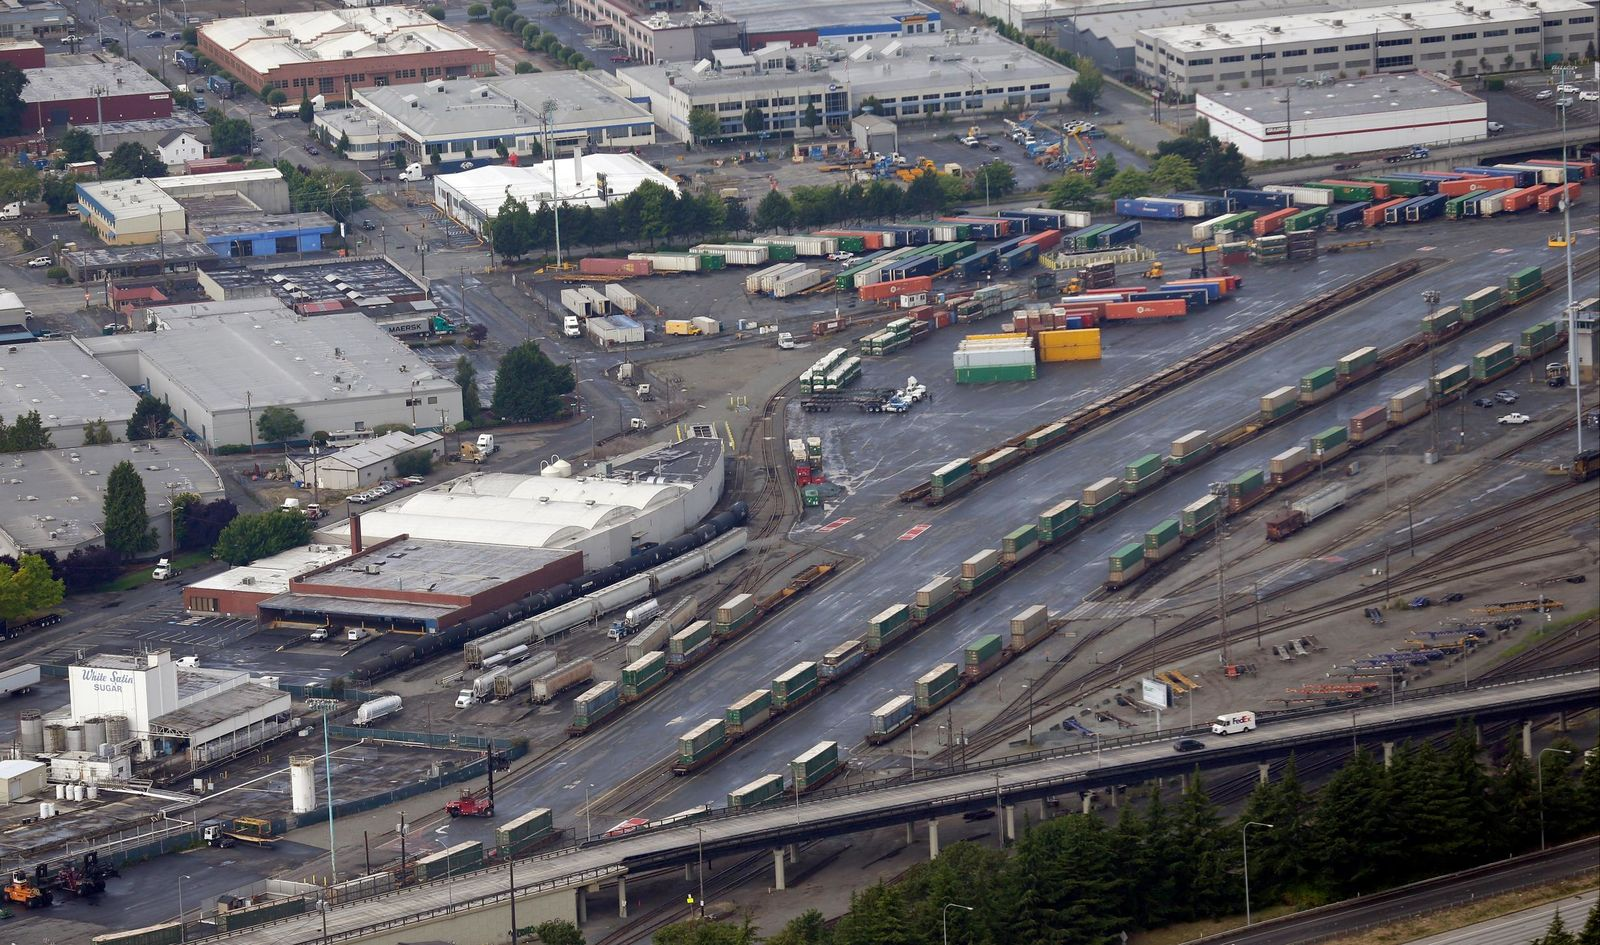 In this Aug. 2, 2014 aerial photo, trains with cargo containers are shown south of Seattle. More than two dozen major companies ranging from Campbell Soup to Kia filed anti-trust lawsuits on Sept. 30, 2019 against the nation's four largest railway companies, contending the railroads had a price-fixing scheme to illegally boost profits. (AP Photo/Ted S. Warren)